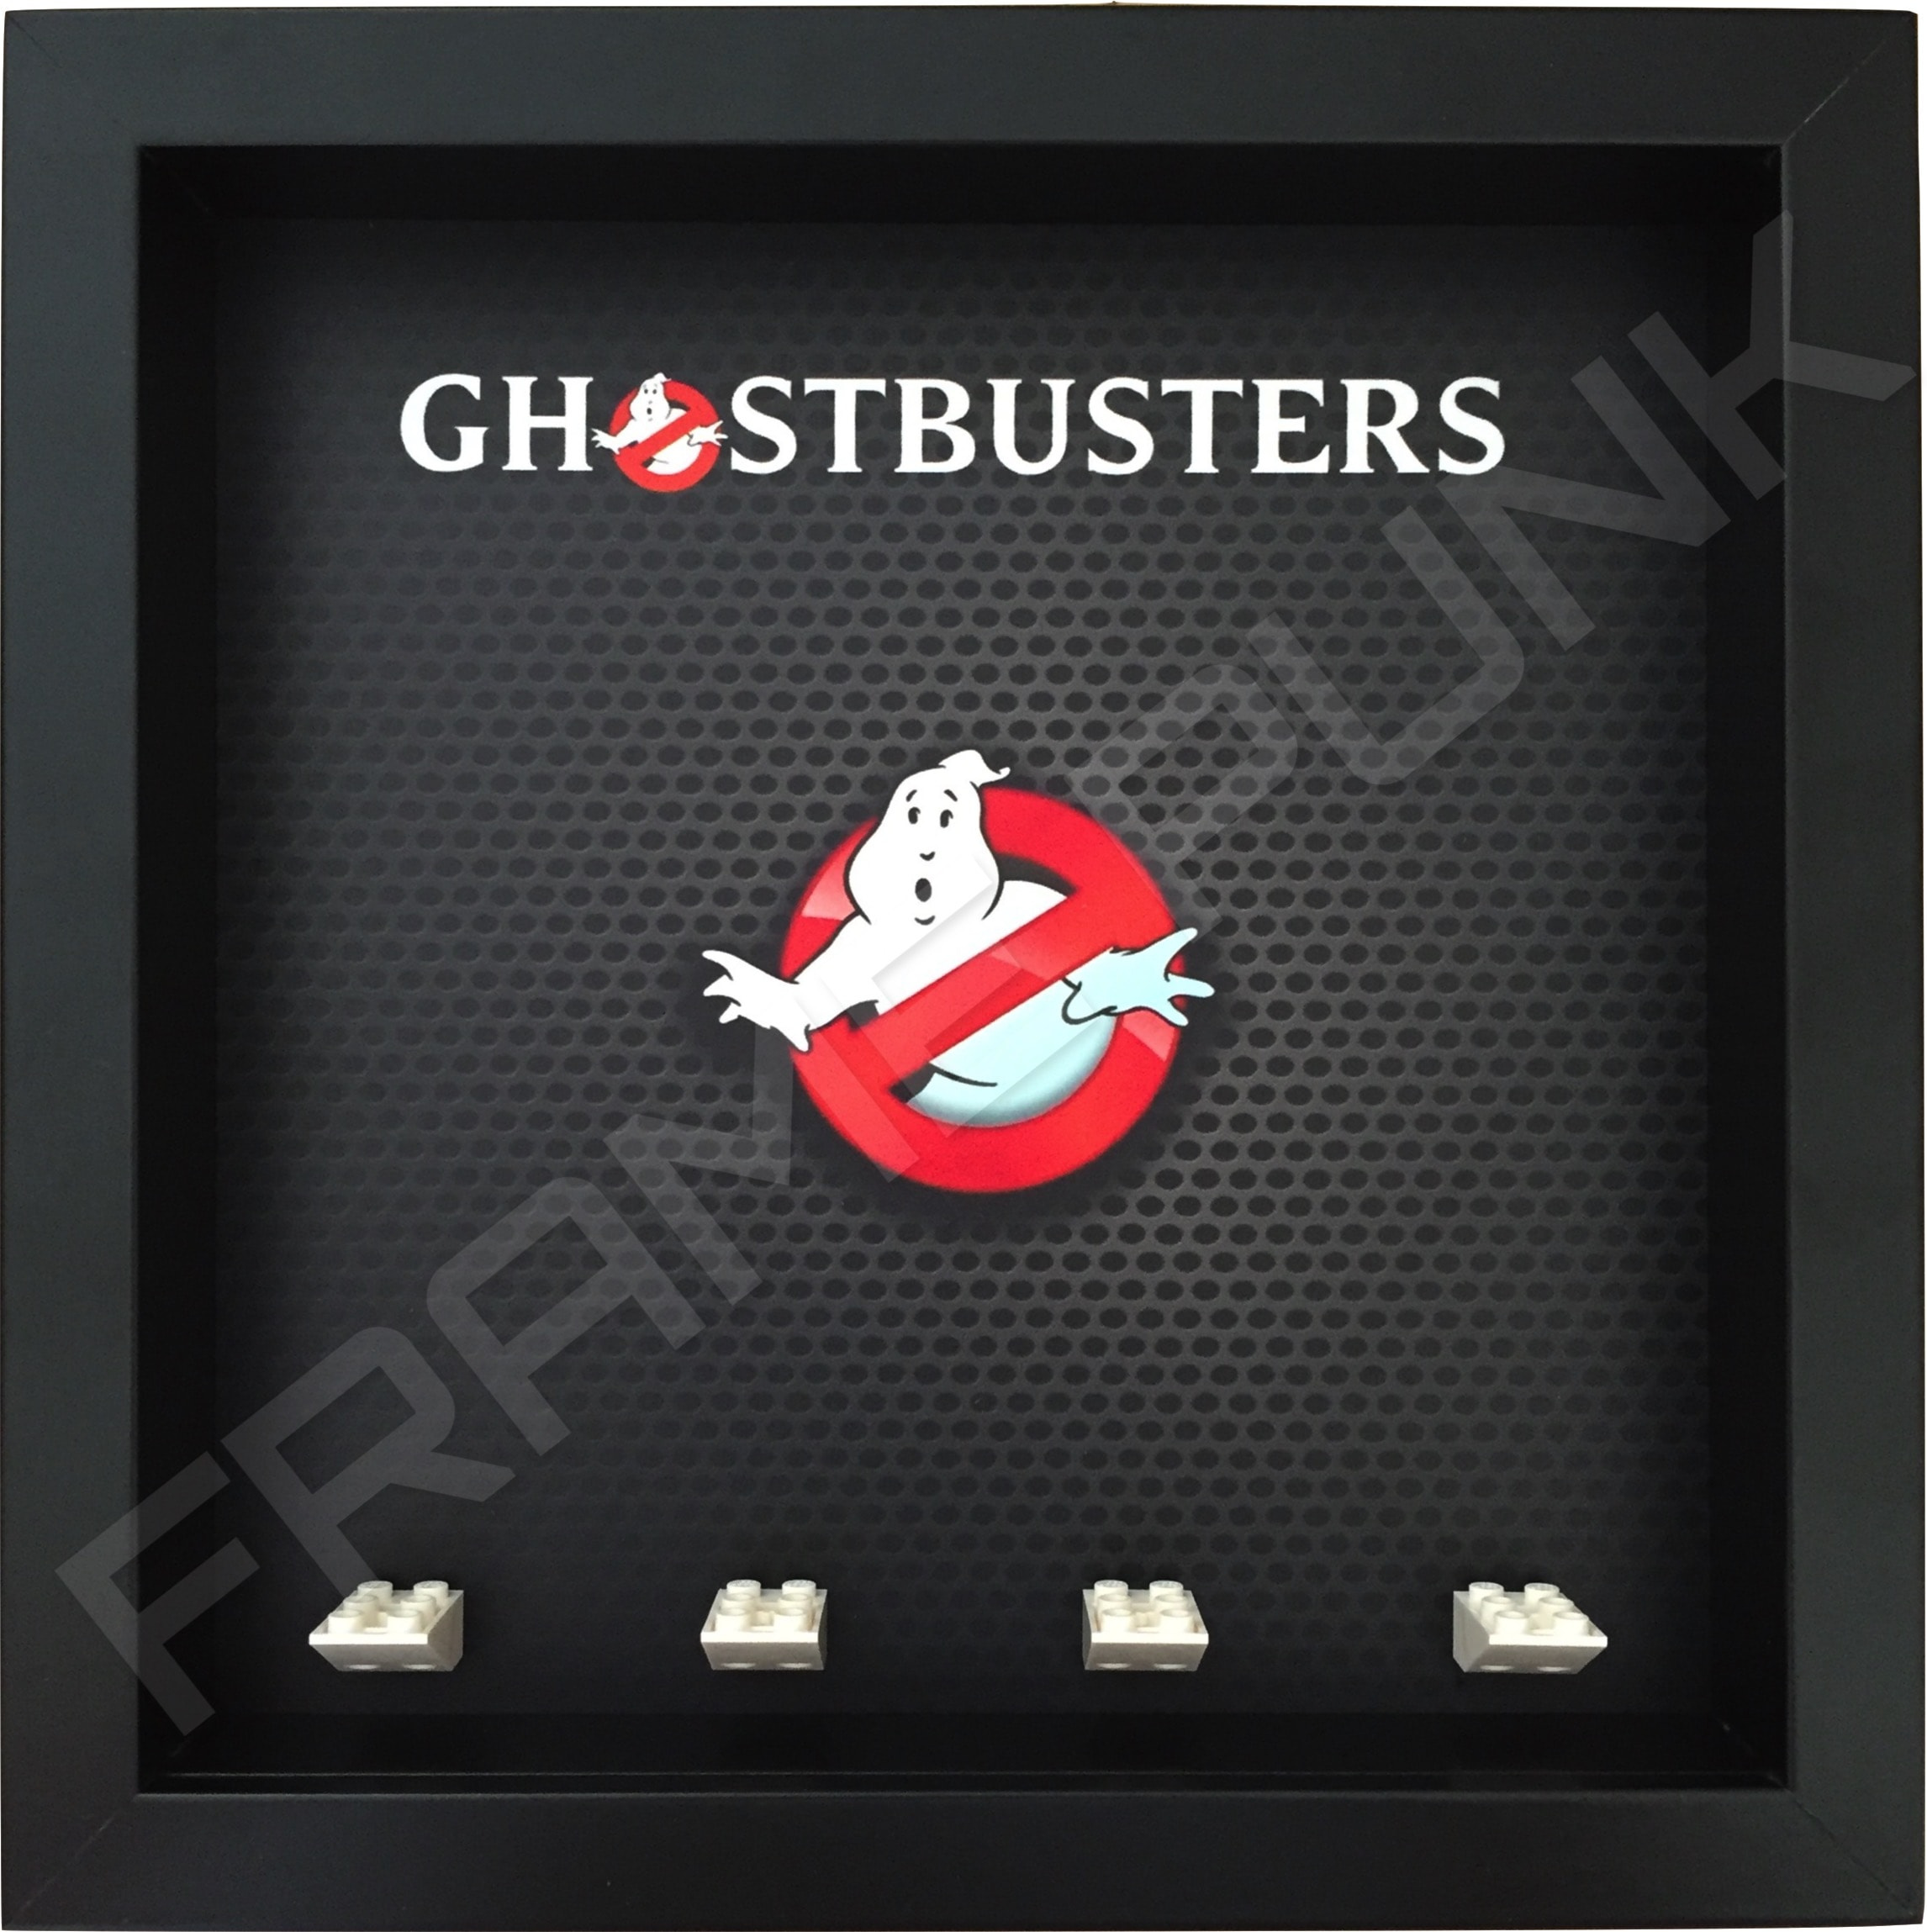 Lego Ghostbusters minifigure display frame